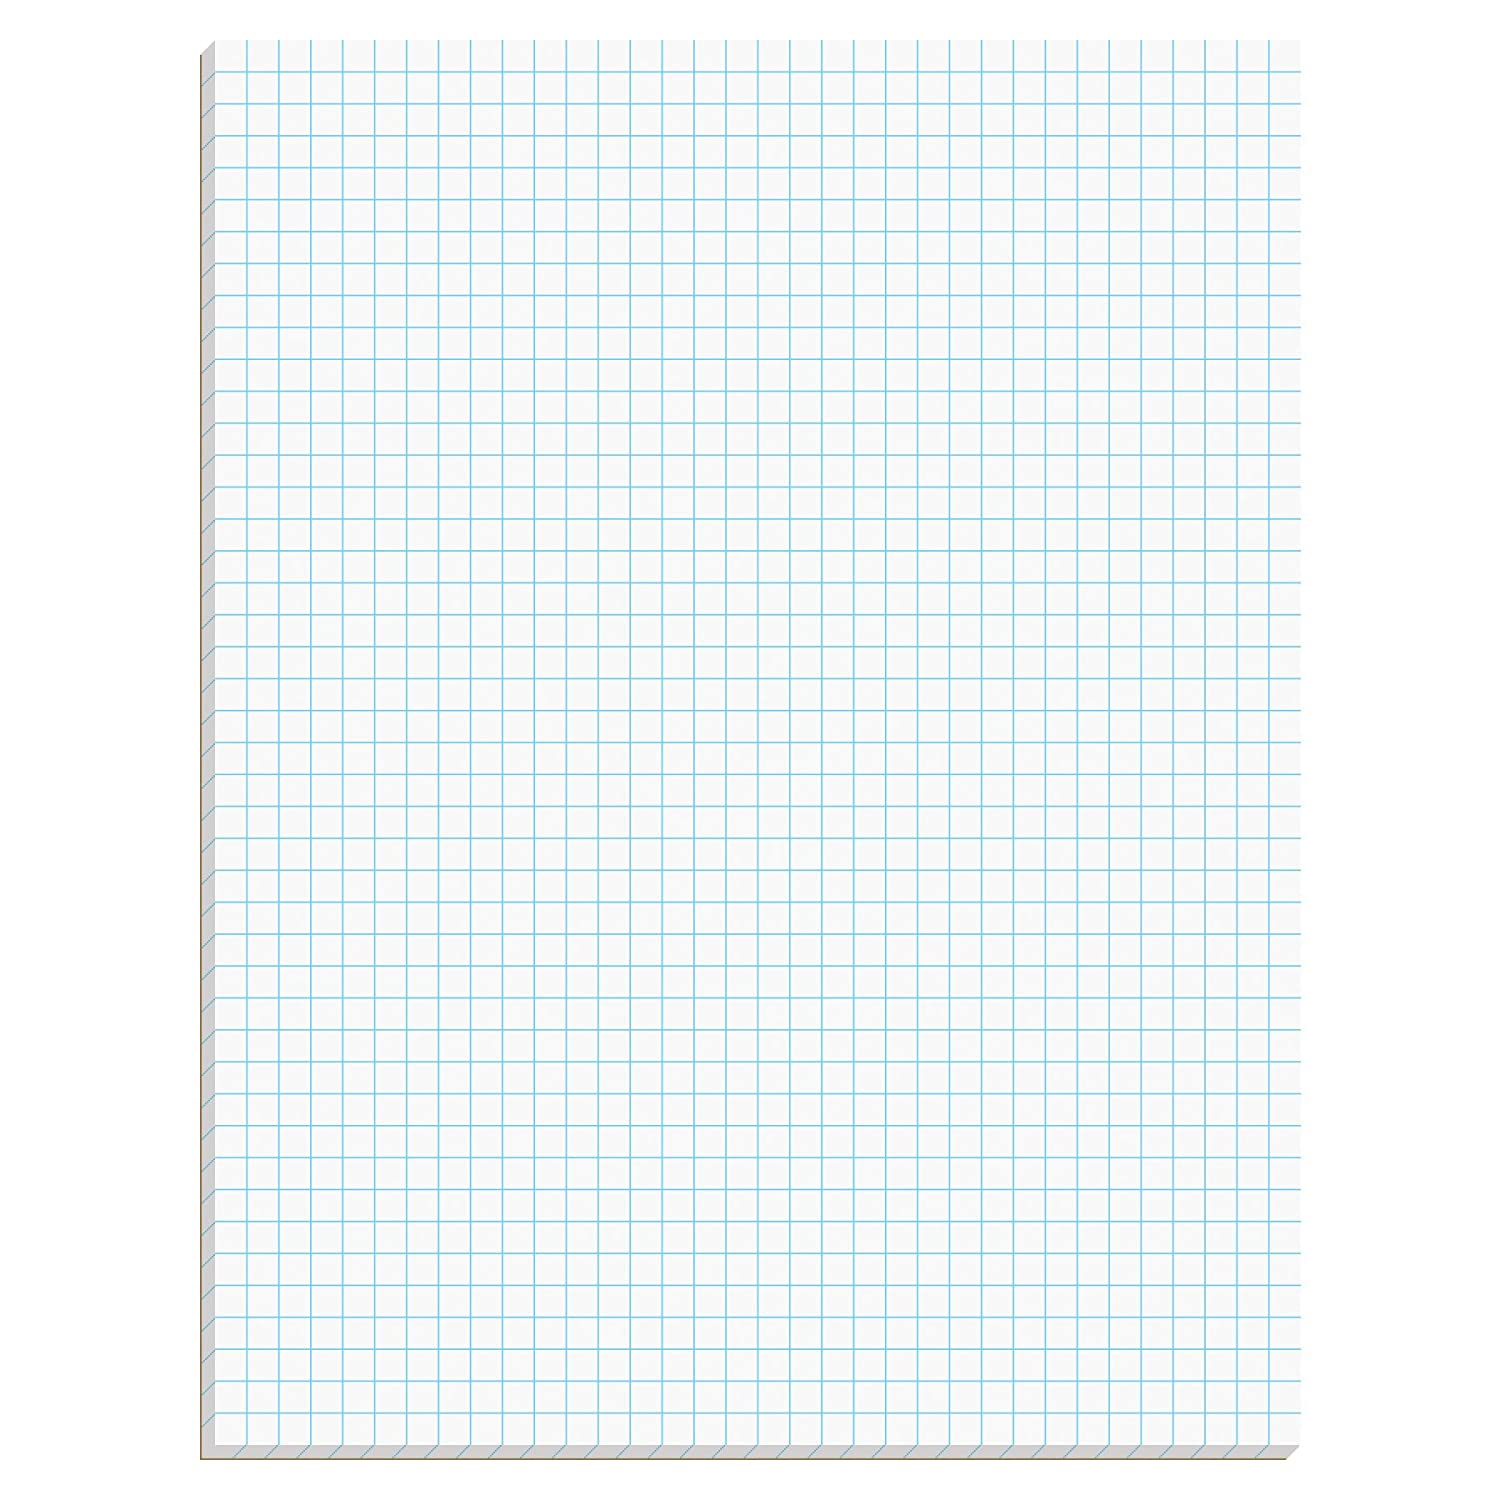 TOPS Quadrille Pad, 8 5 x 11 Inches, 15 Pound Stock, 50 Sheets per Pad, 6  Pads per Pack, White (99522)